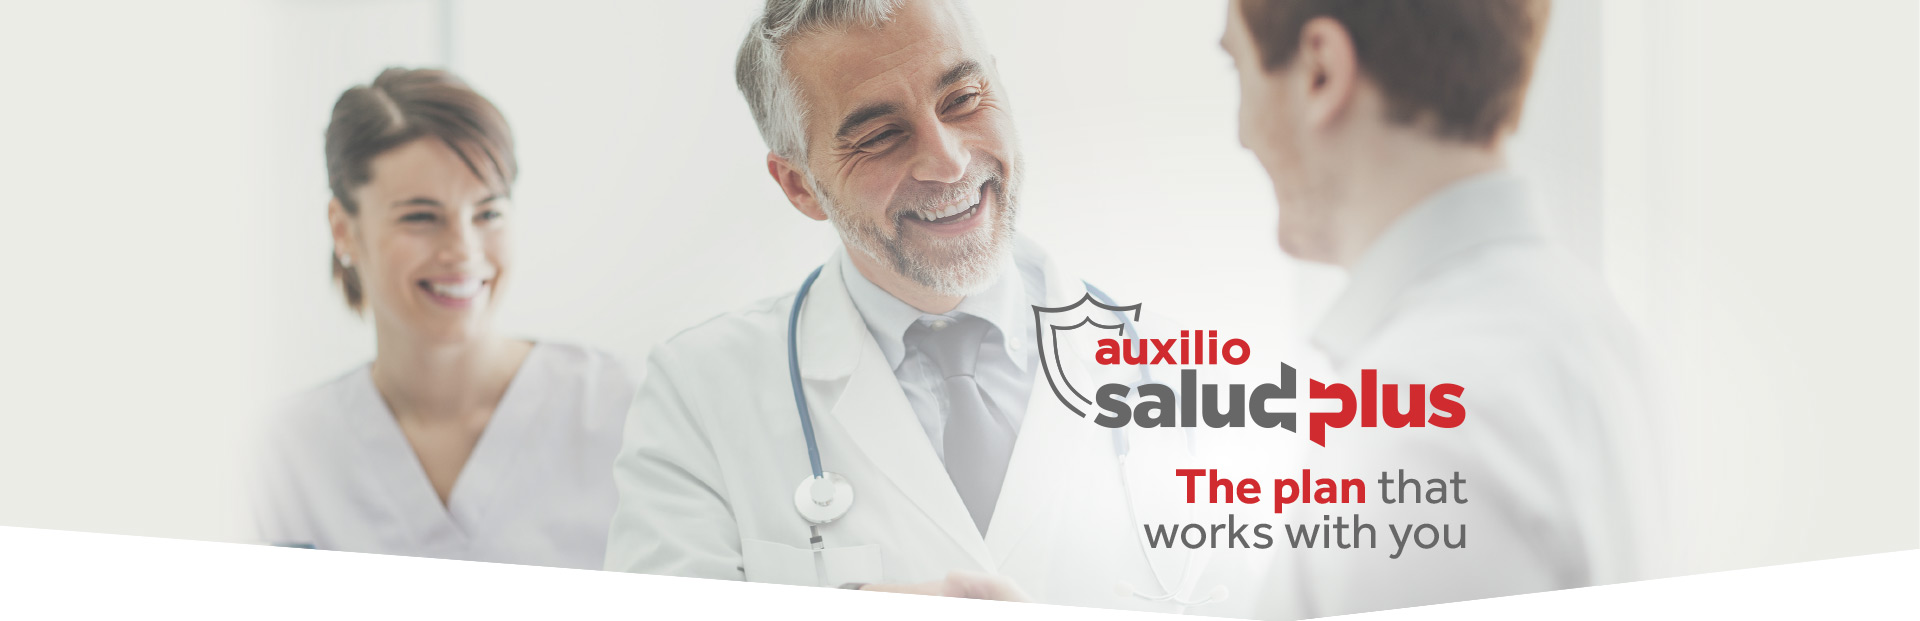 Auxilio Salud Plus: The plan that works with you.